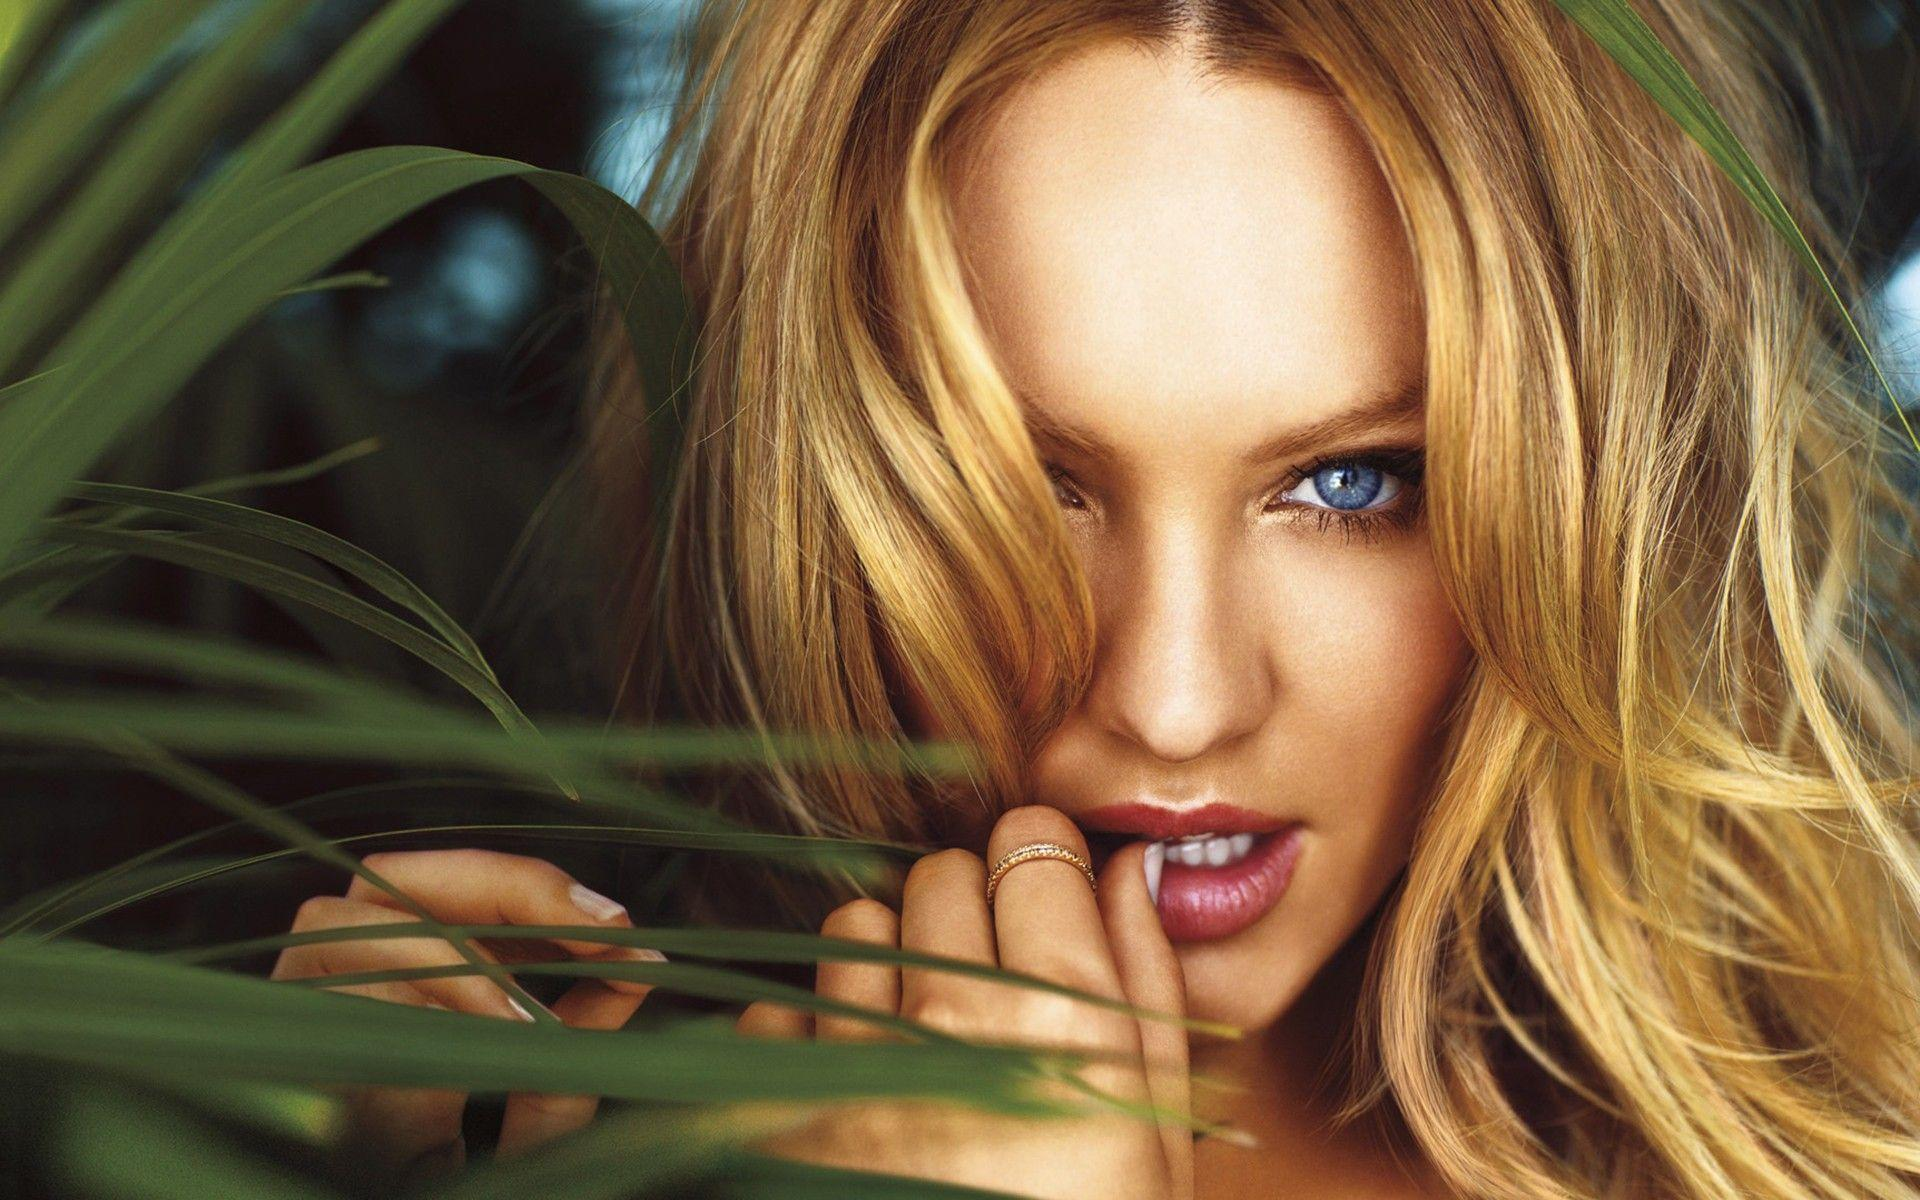 Candice Swanepoel Natural Beauty widescreen wallpaper | Wide-